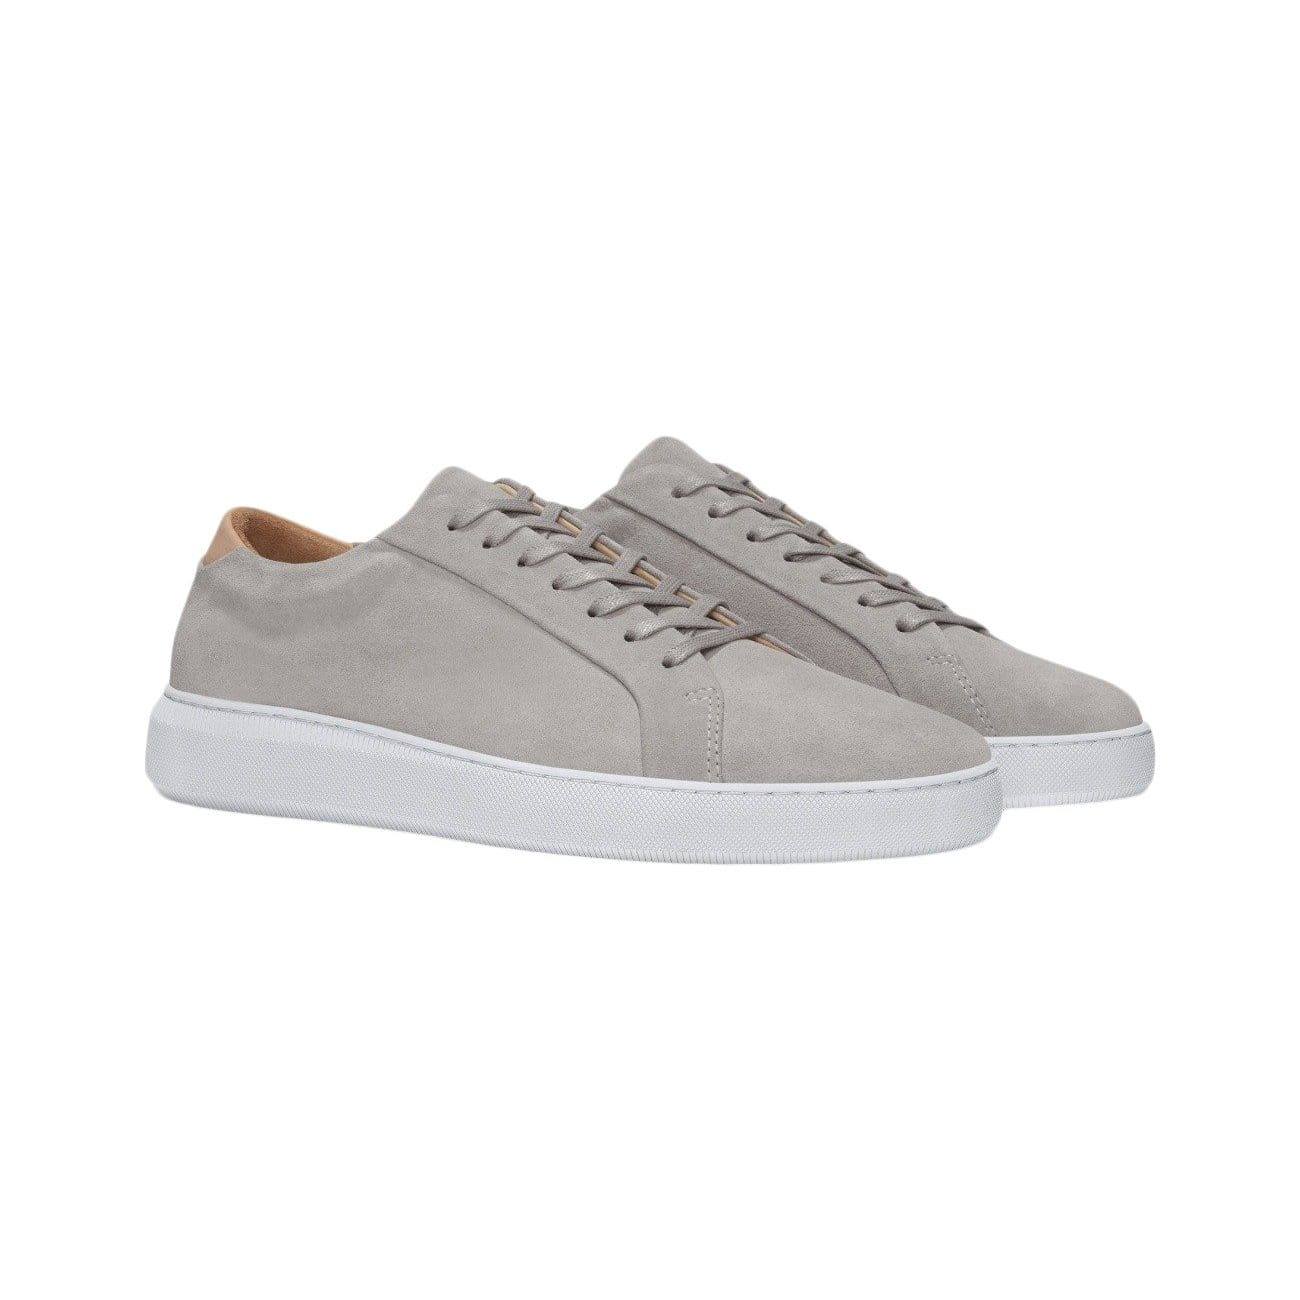 UNIFORM STANDARD SERIES 8 Women's SERIES 8 Ghost Suede Sneaker